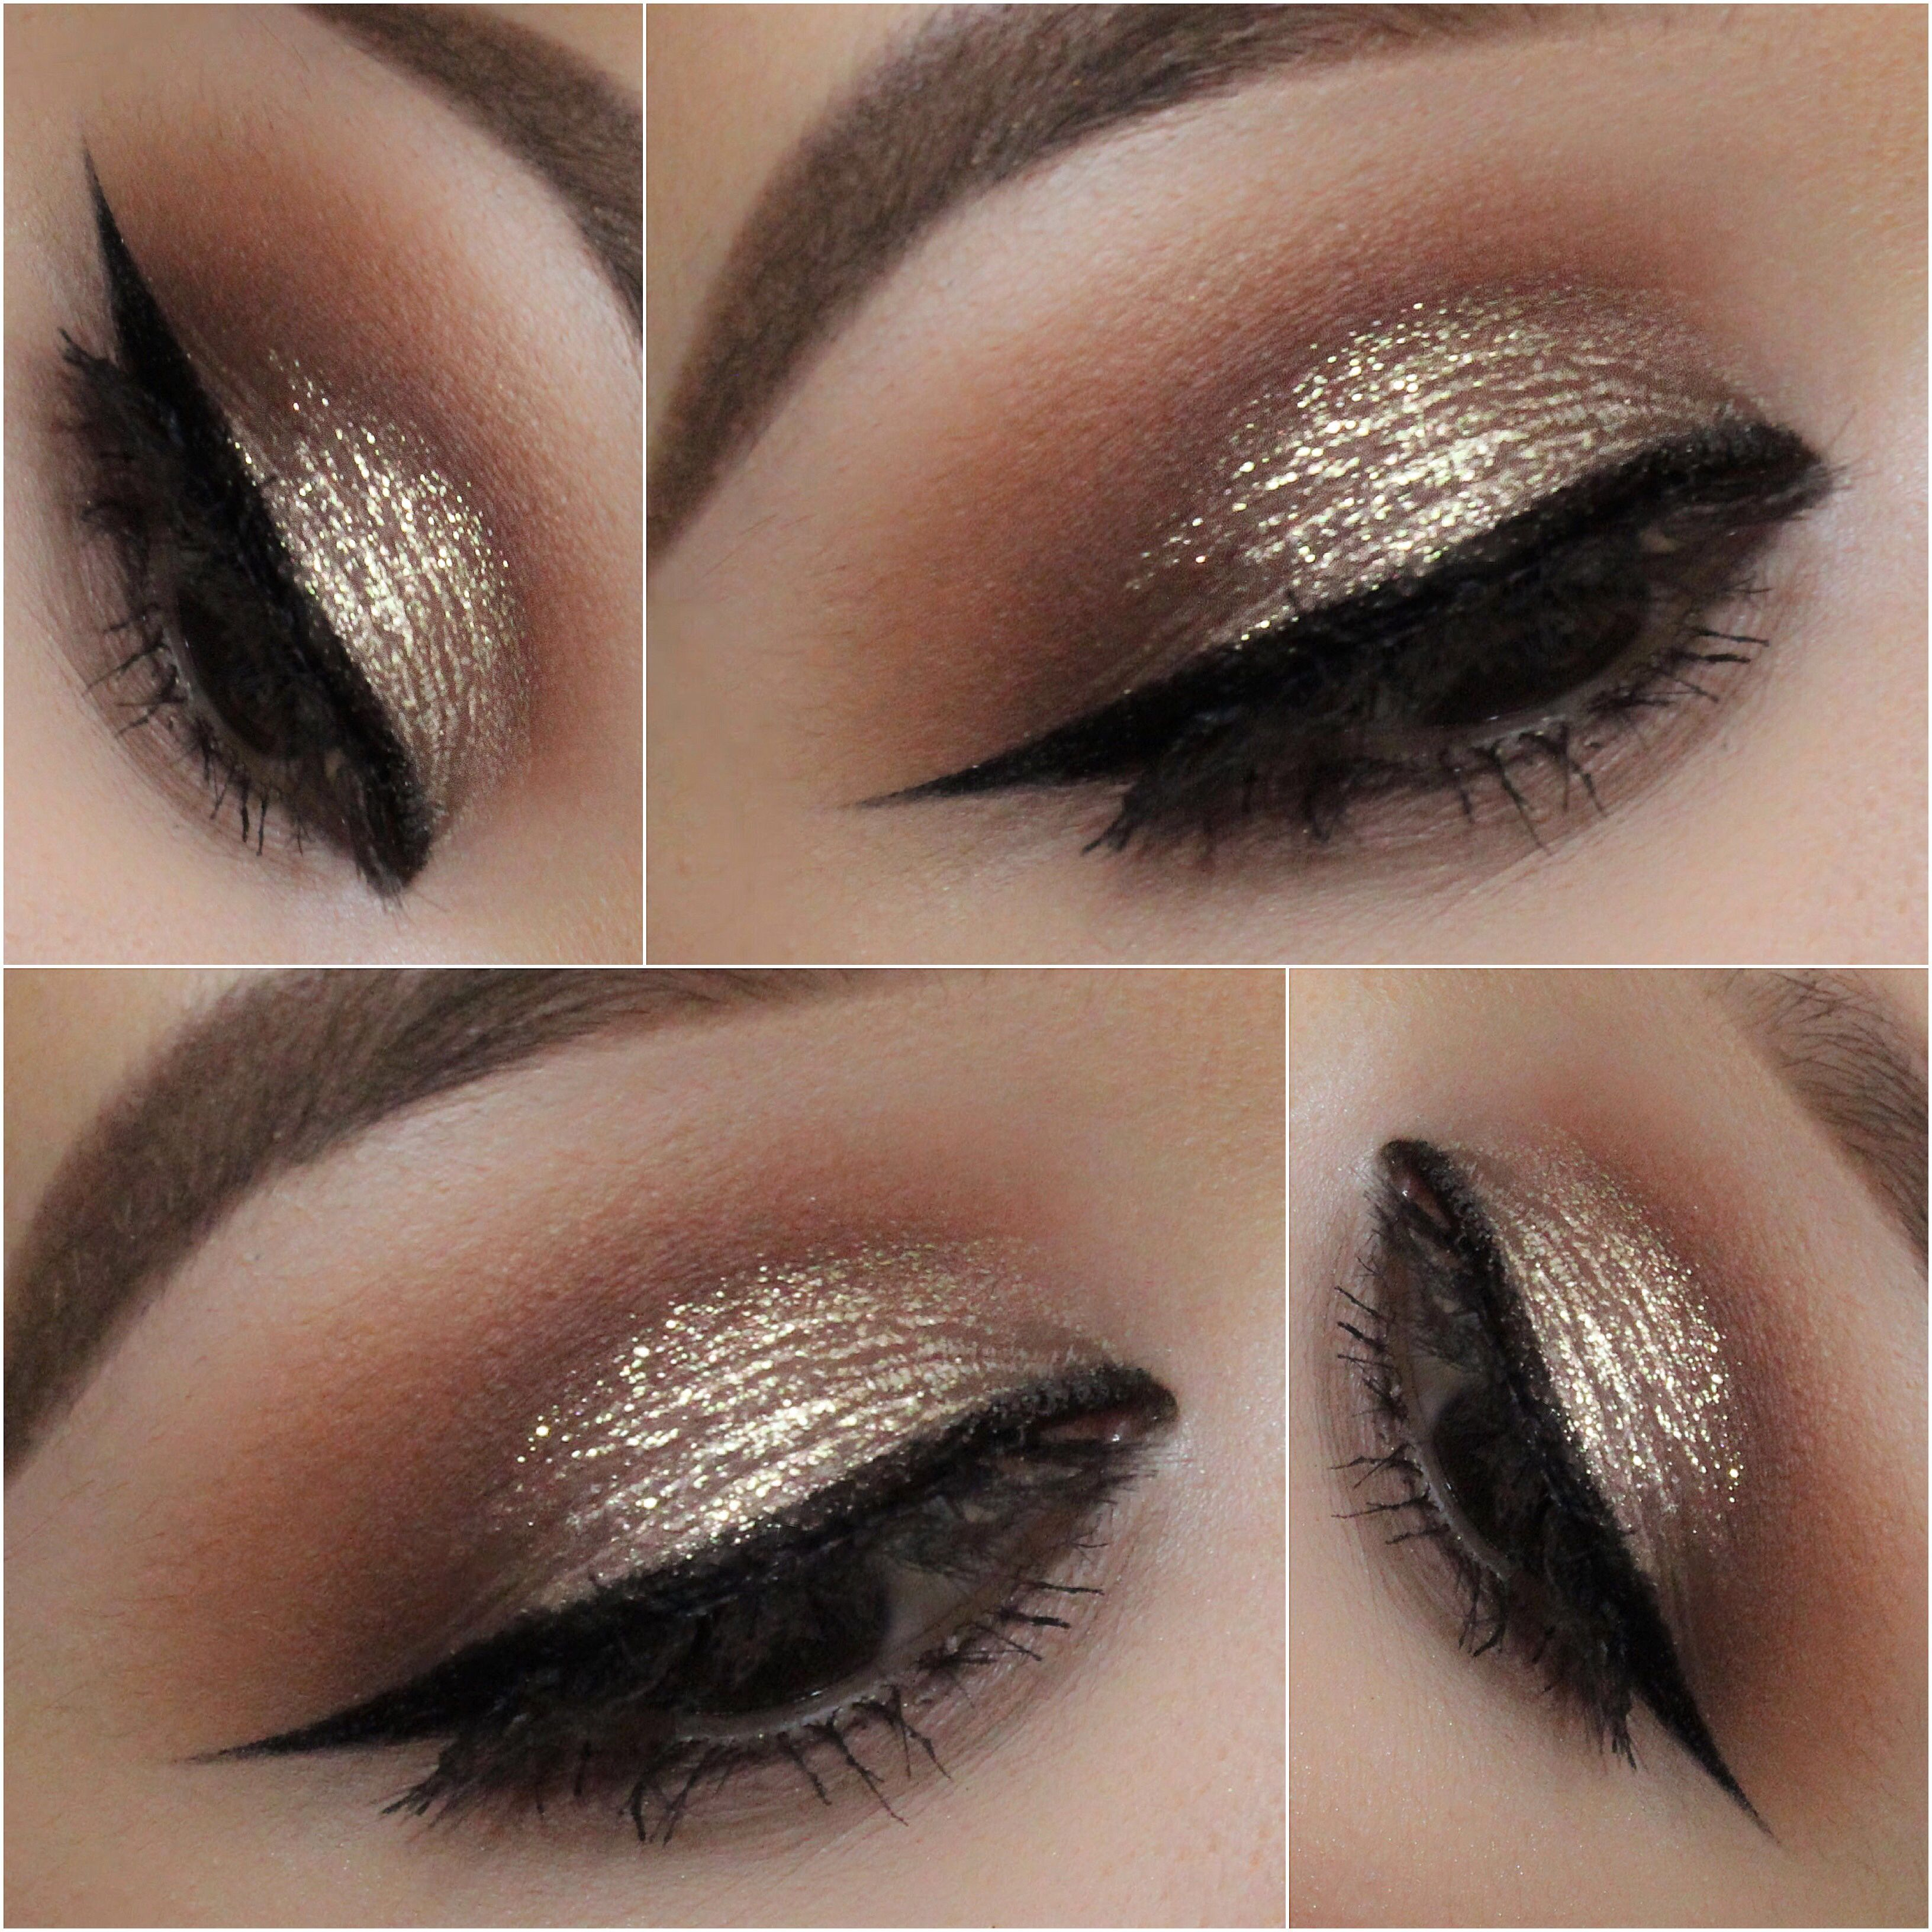 Stila Magnificent Metals In Pixie Dust Shanneythich Insta Stila Glitter Eyeshadow Glitter Eyeshadow Glitter Eyeshadow Tutorial